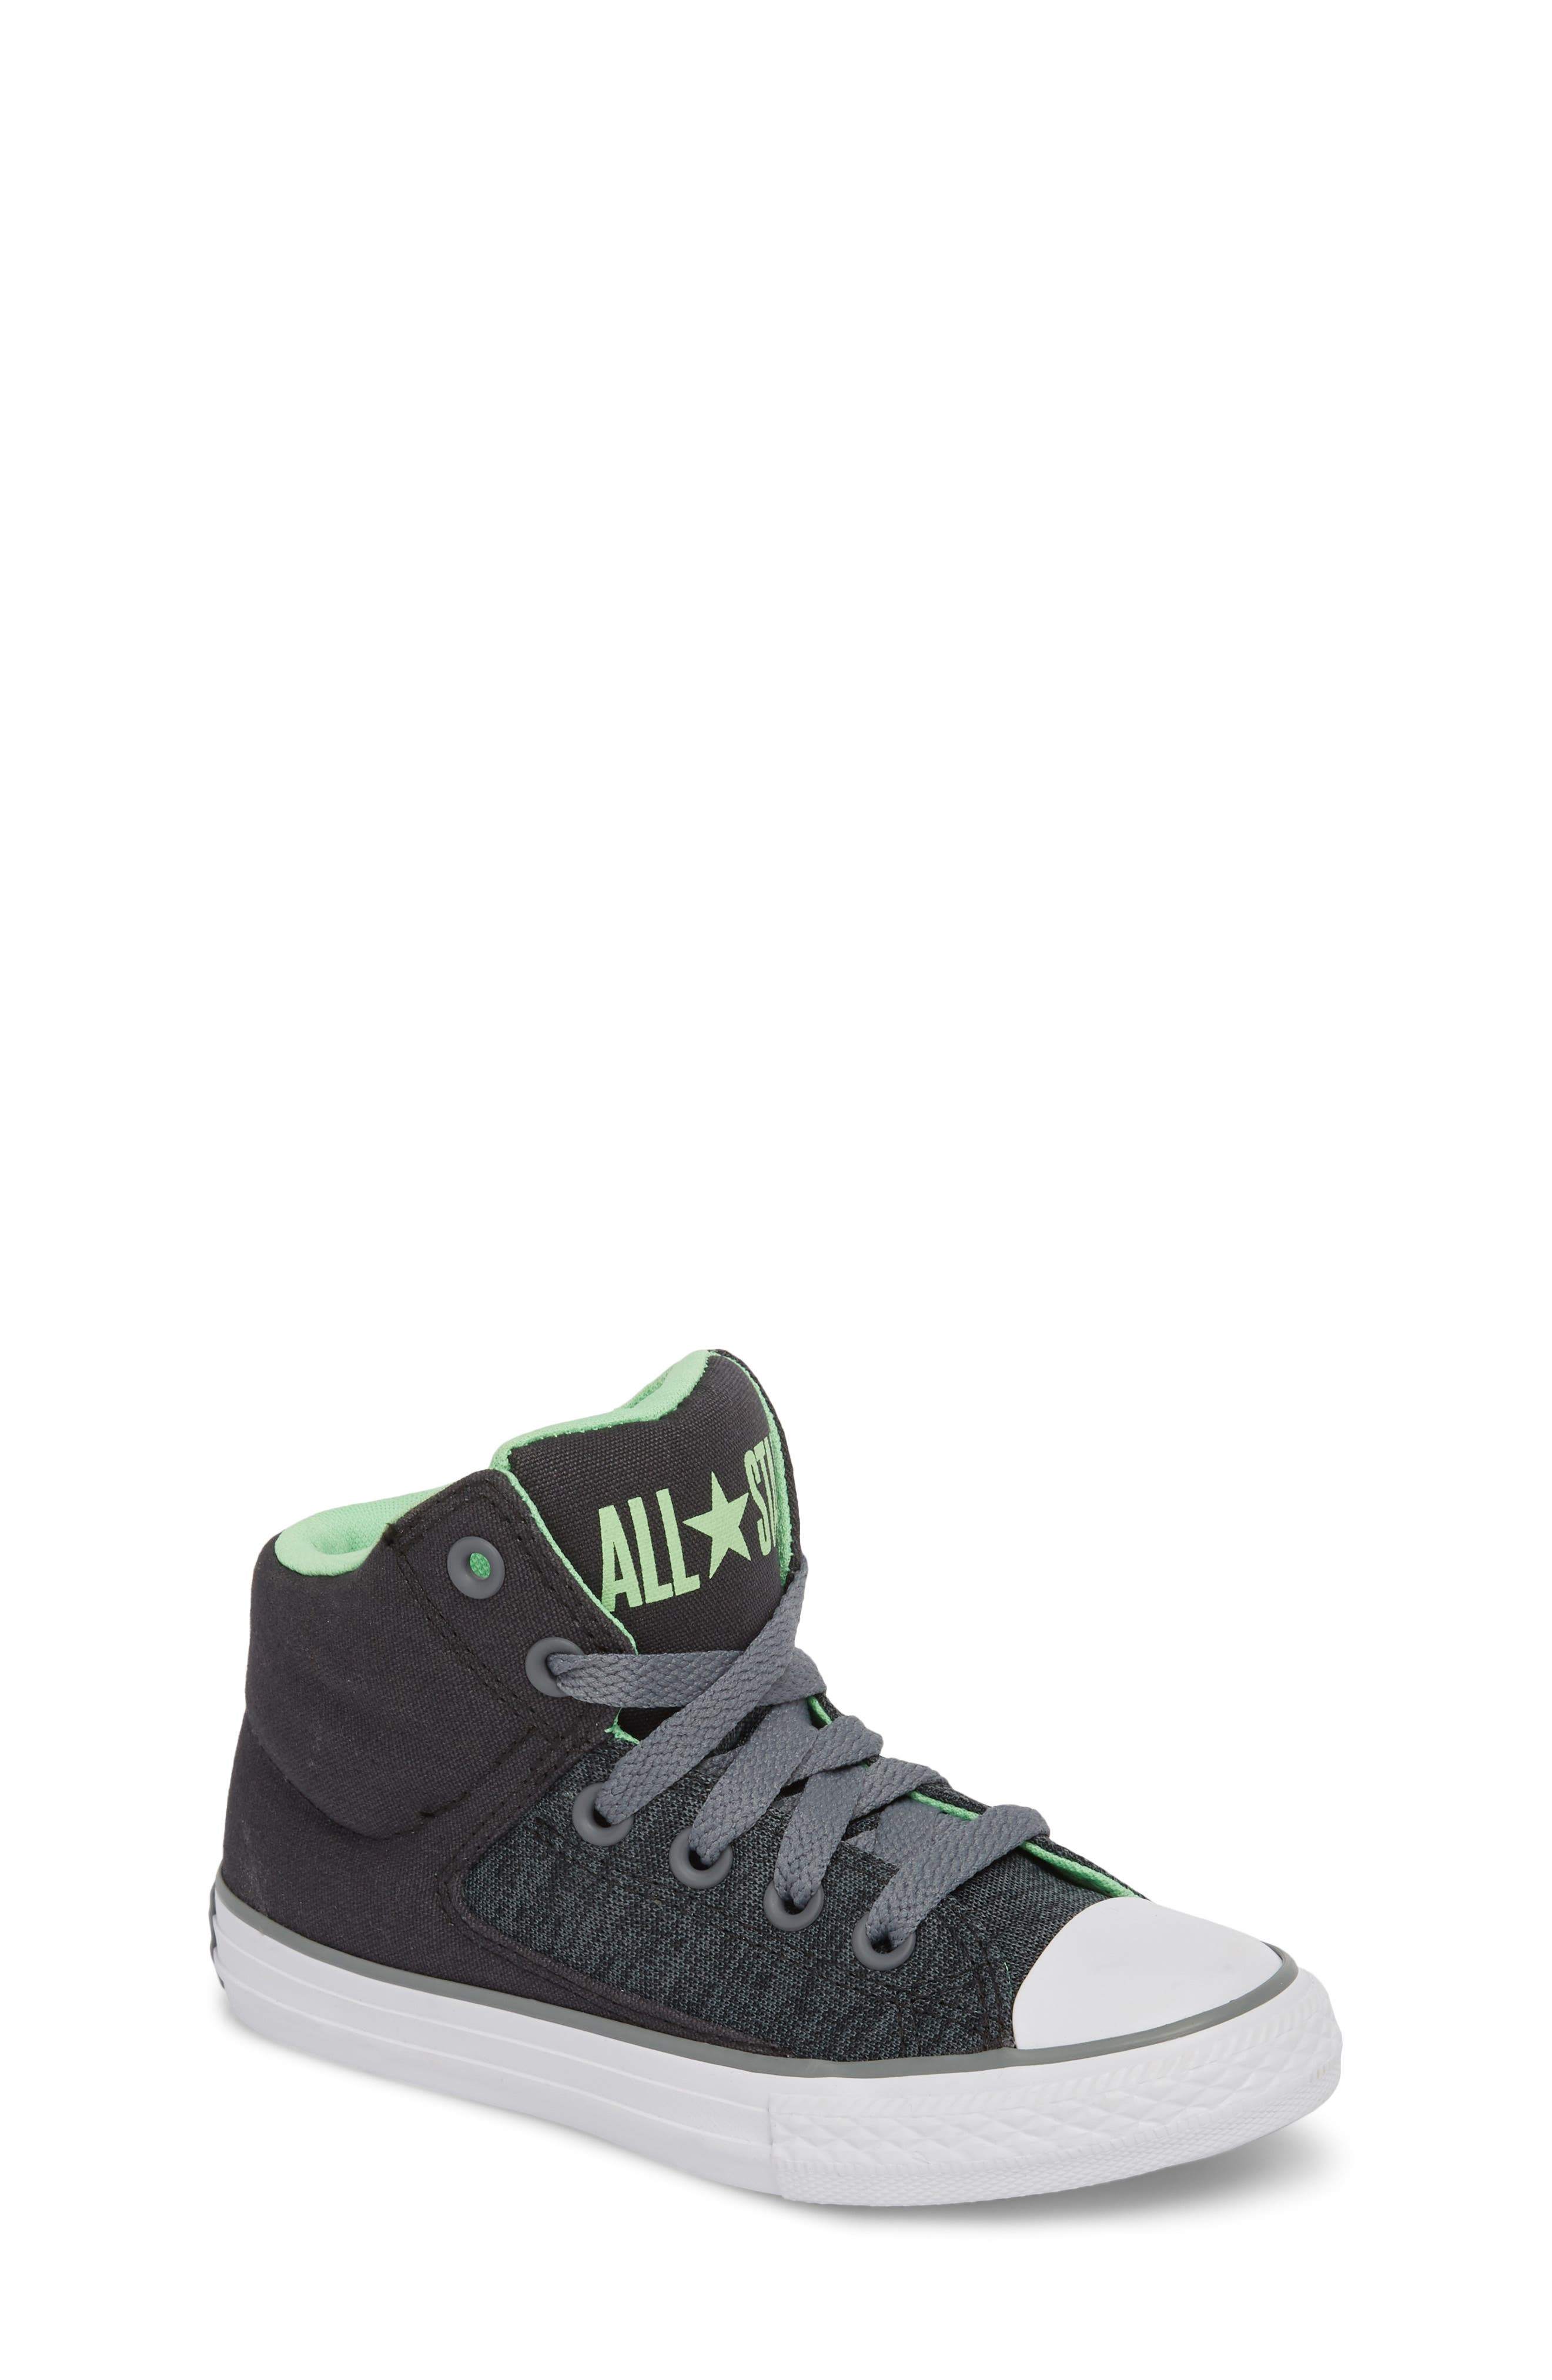 Chuck Taylor<sup>®</sup> All Star<sup>®</sup> High Street High Top Sneaker,                         Main,                         color, Almost Black